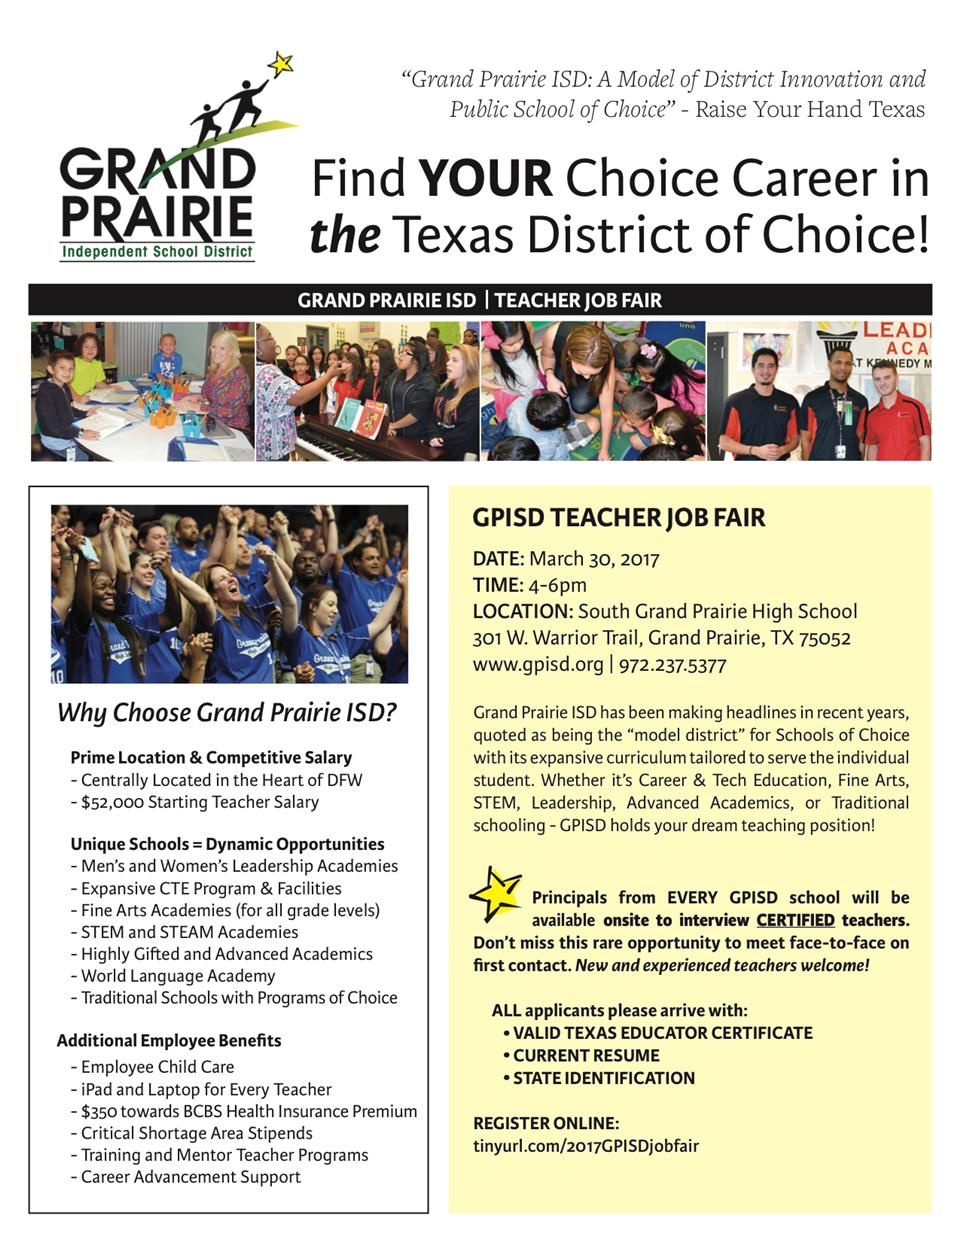 GPISD Job Fair flyer